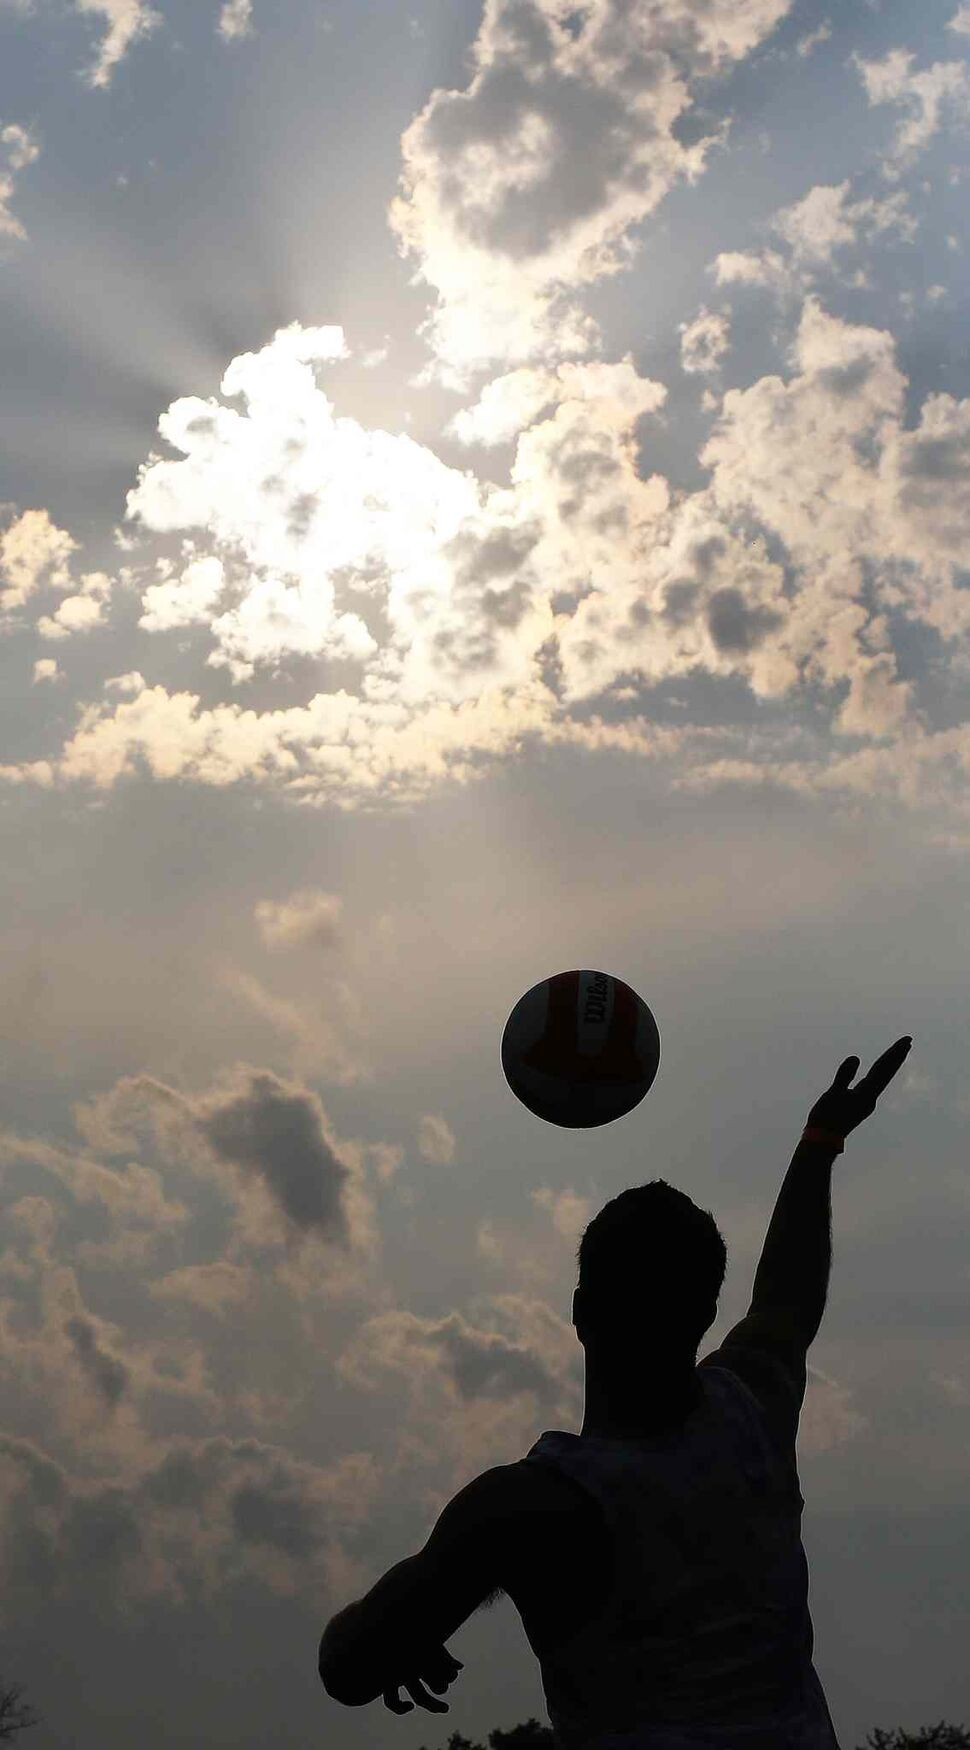 A member of Back That Pass Up hits the ball during the Super-Spike volleyball tournament at Maple Grove Rugby Park, Friday, July 18, 2014.  (TREVOR HAGAN/WINNIPEG FREE PRESS)